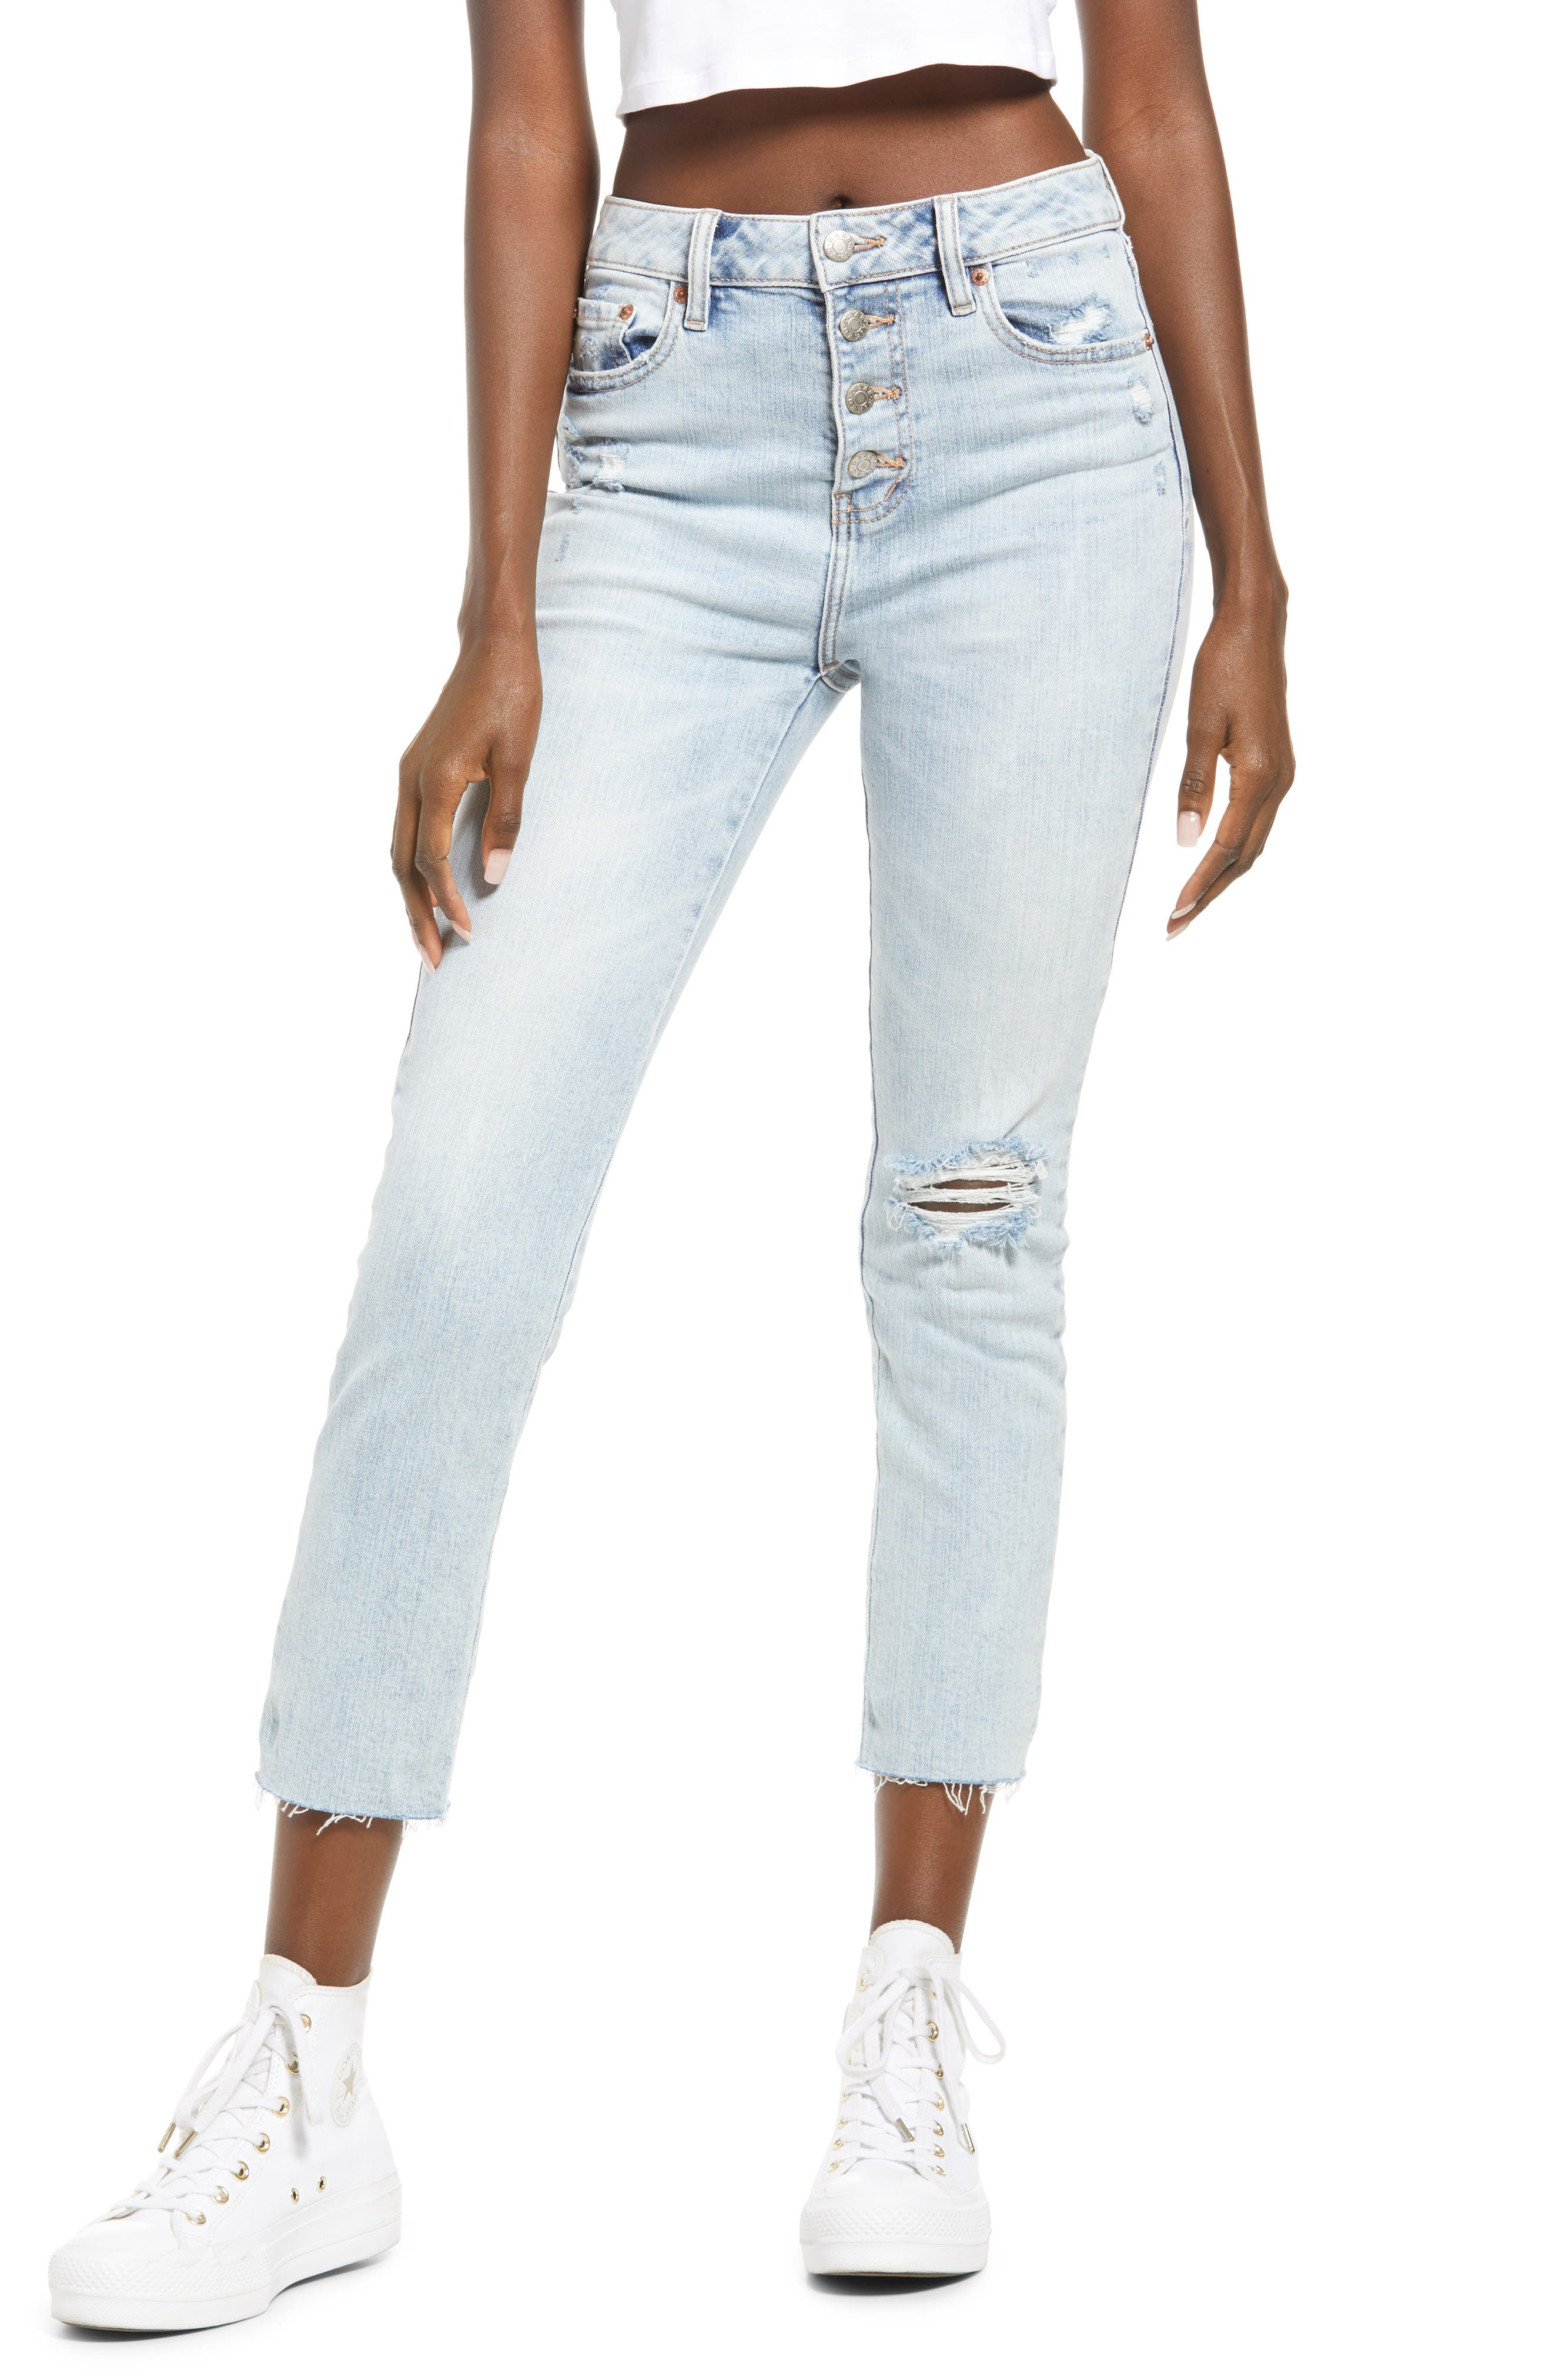 Daily Driver High Waist Button Fly Straight Leg Jeans